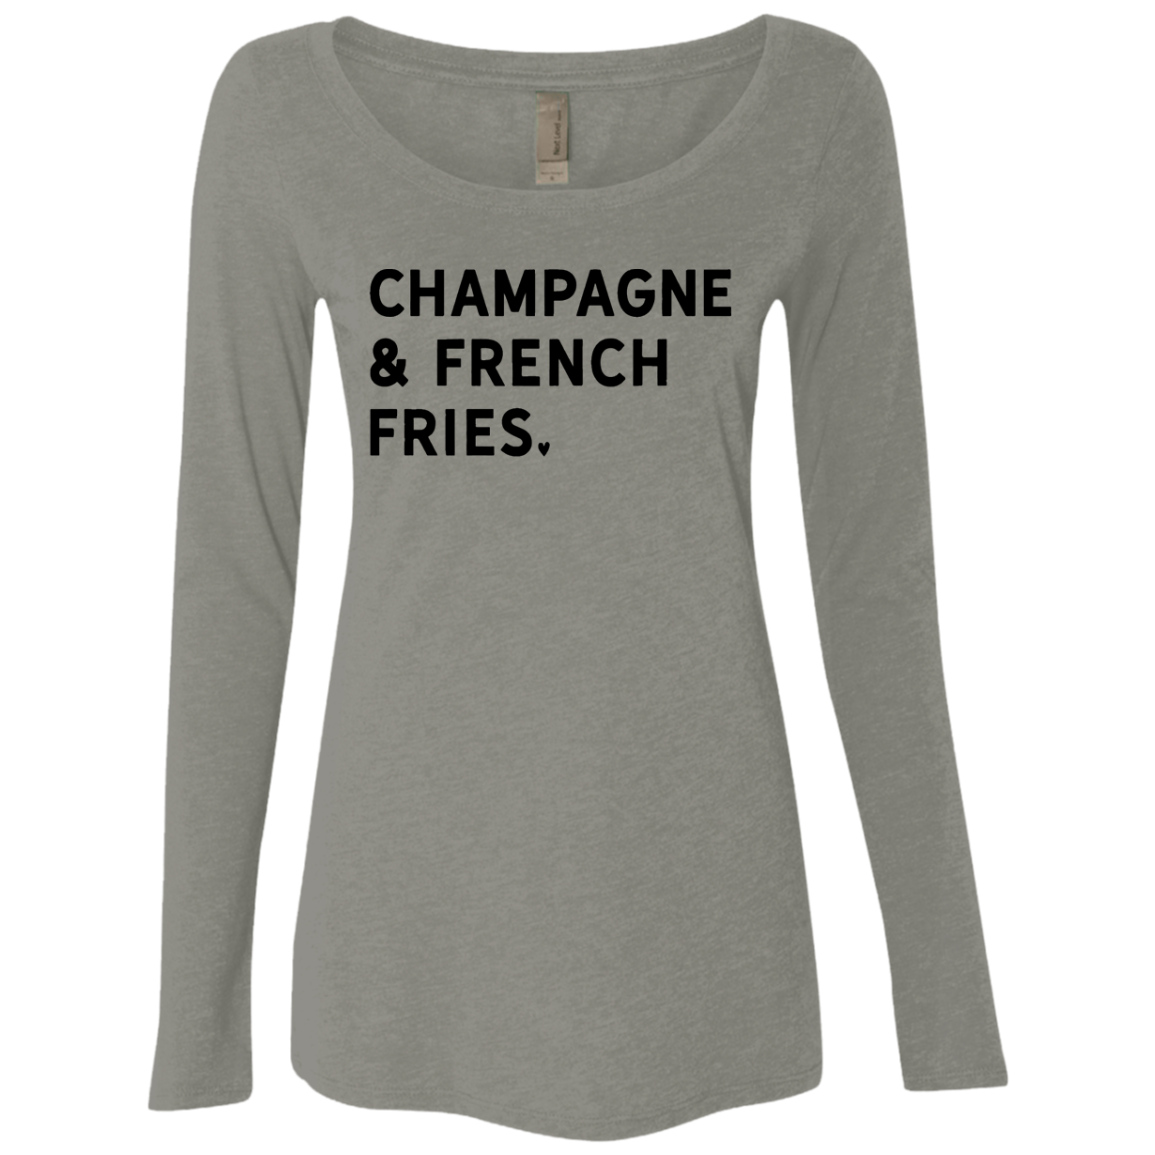 Champagne and French Fries Women's Long Sleeve Tee - Trendy Tees